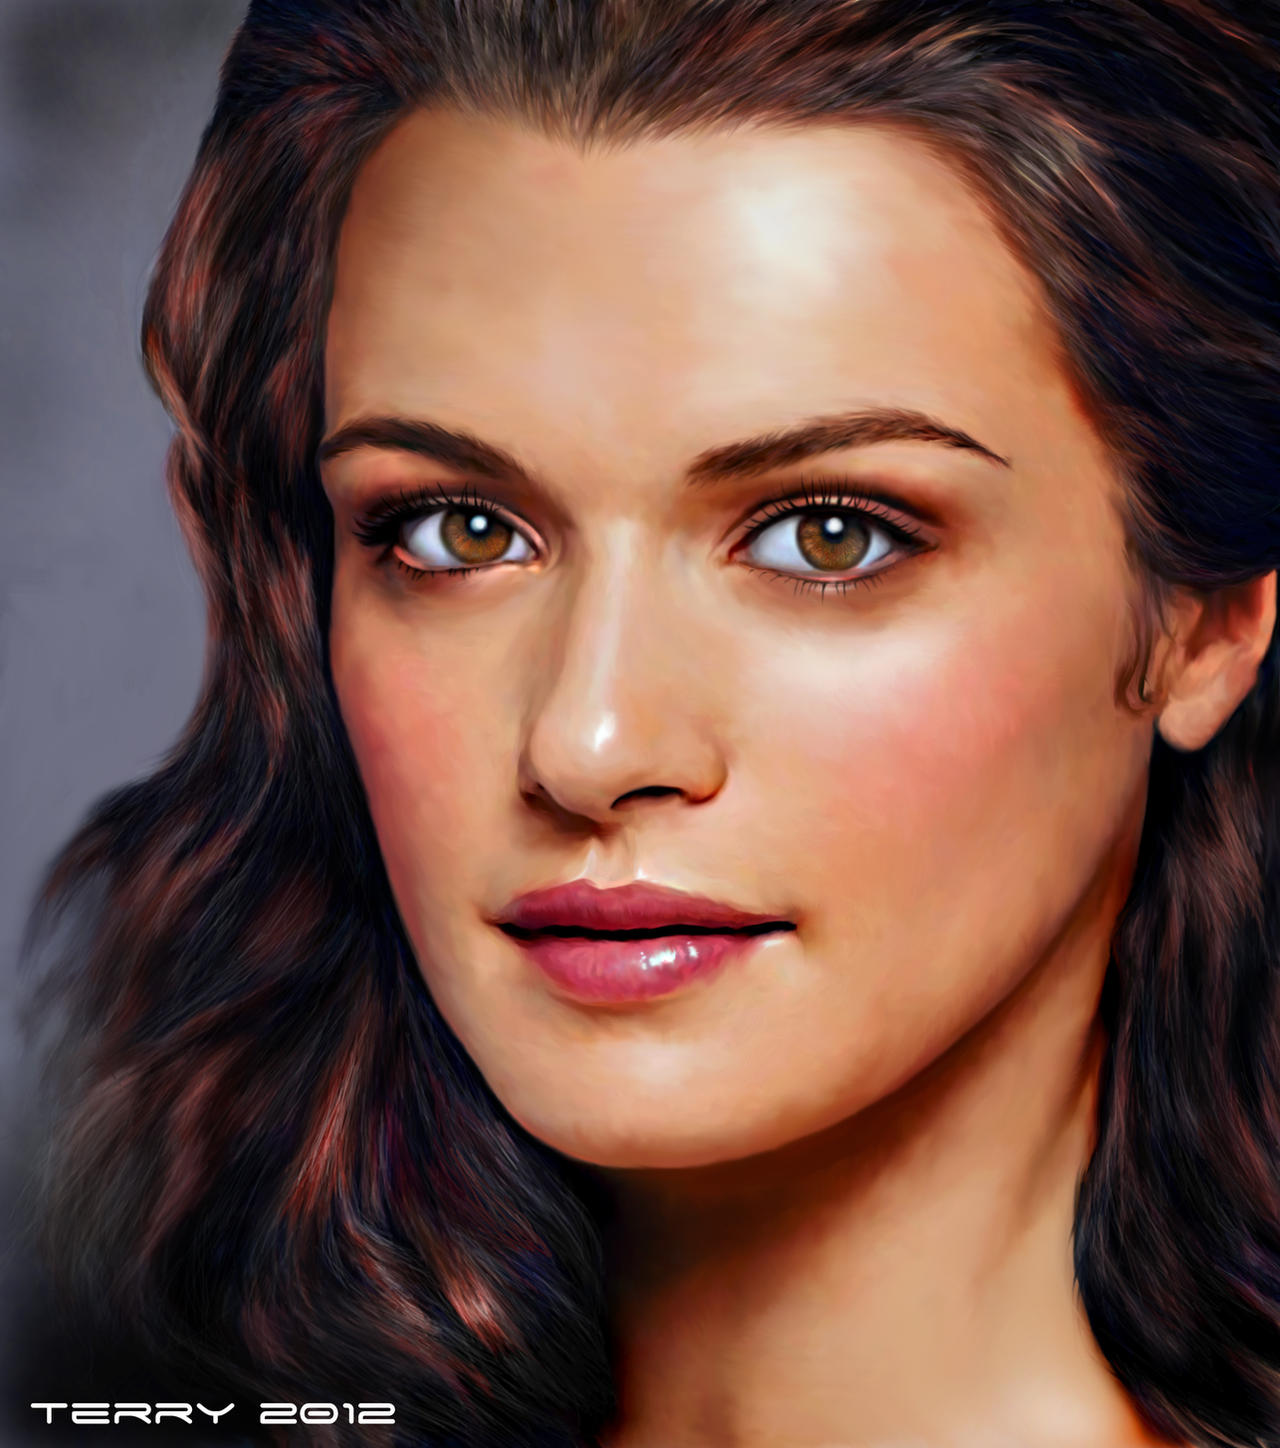 rachel weisz finalterry2012 on deviantart